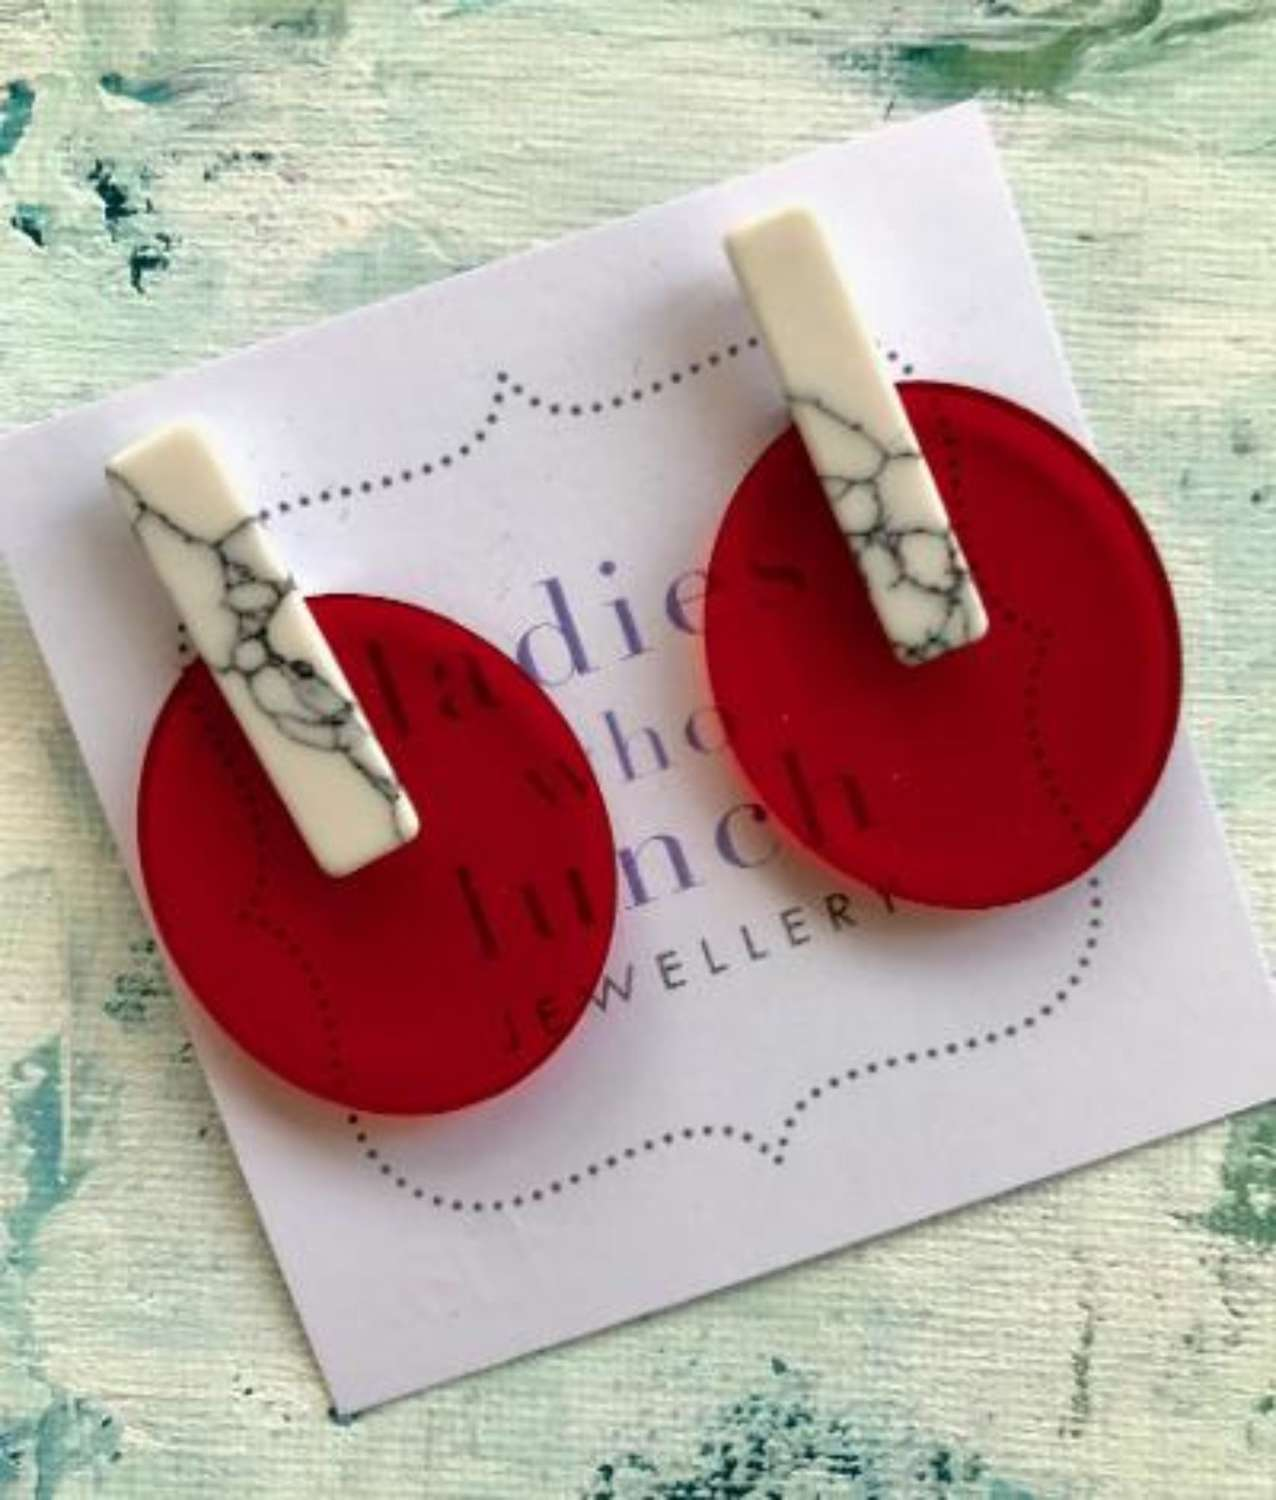 Red and white resin earrings